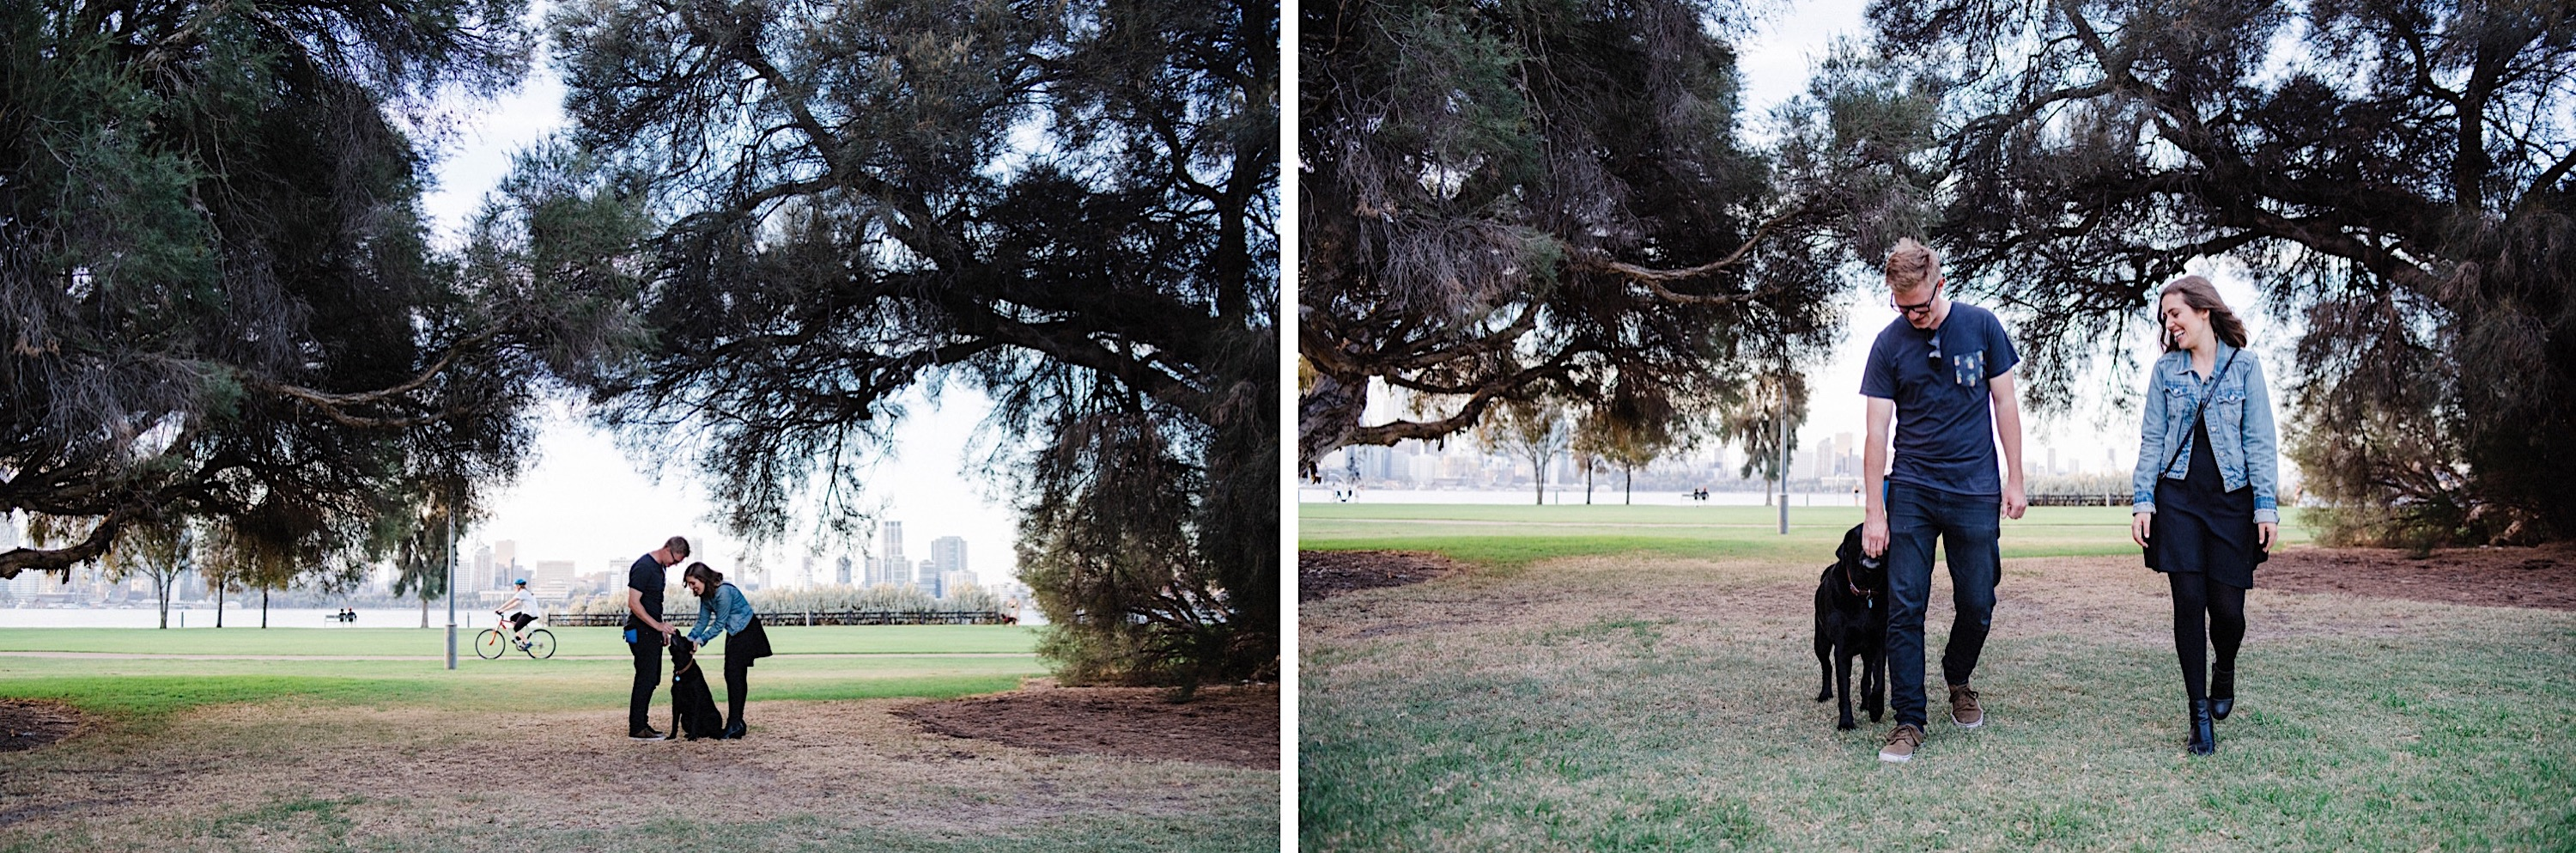 Two photos of a dog and it's owners walking underneath paperbark trees at Sir James Mitchell Park in South Perth.